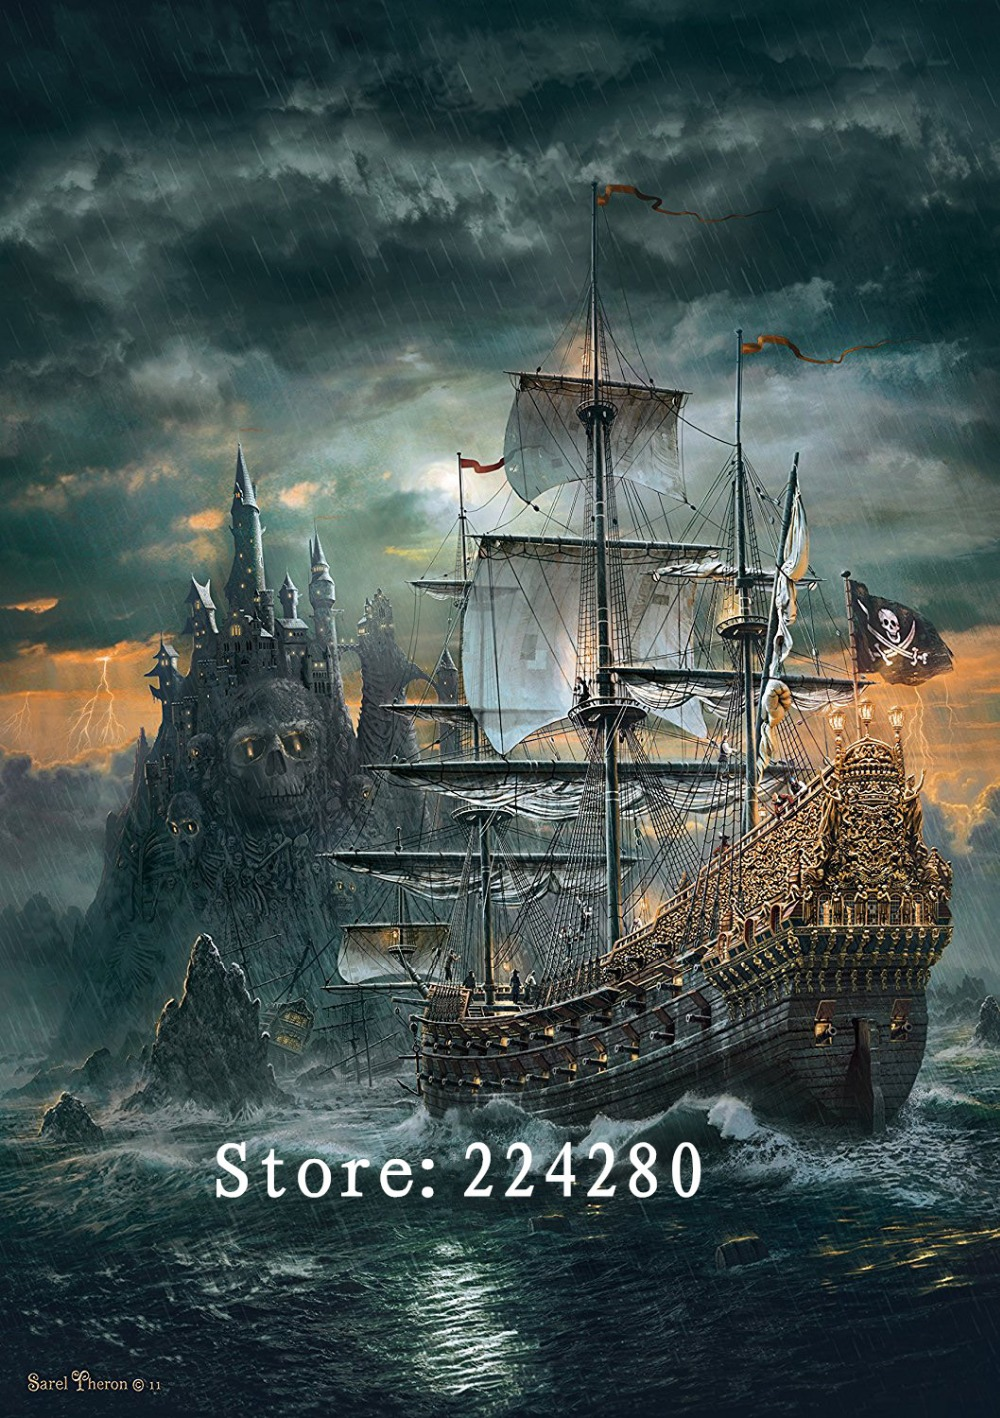 Needlework,Sea sailing scenery 14CT Counted For Embroidery,High Quality DIY DMC Cross stitch kits,Art Cross-Stitching Home DecorNeedlework,Sea sailing scenery 14CT Counted For Embroidery,High Quality DIY DMC Cross stitch kits,Art Cross-Stitching Home Decor